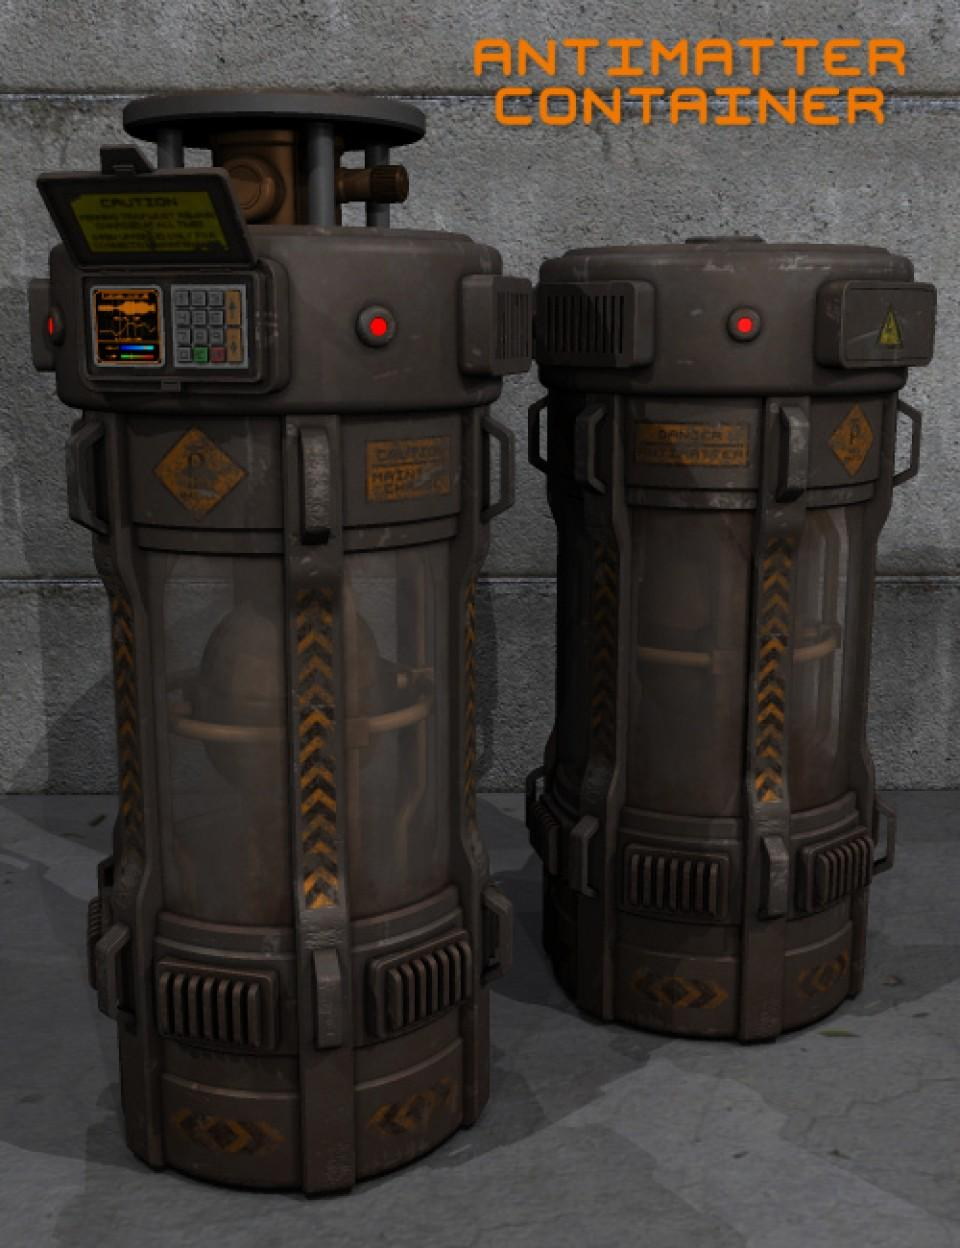 Antimatter Container